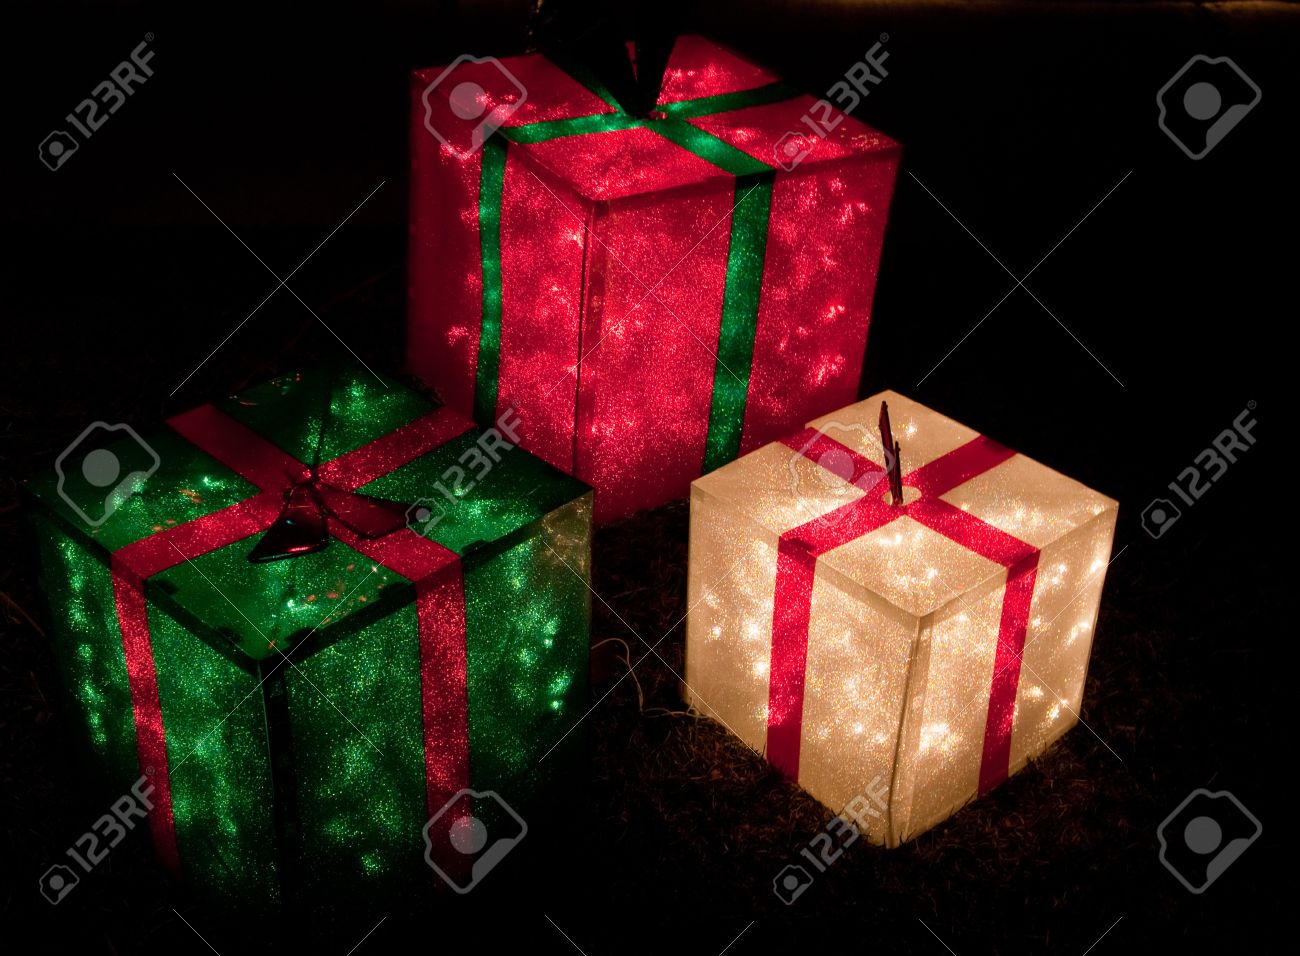 Red green and white lighted gift boxes for Christmas Stock Photo - 10391263 & Red Green And White Lighted Gift Boxes For Christmas Stock Photo ...